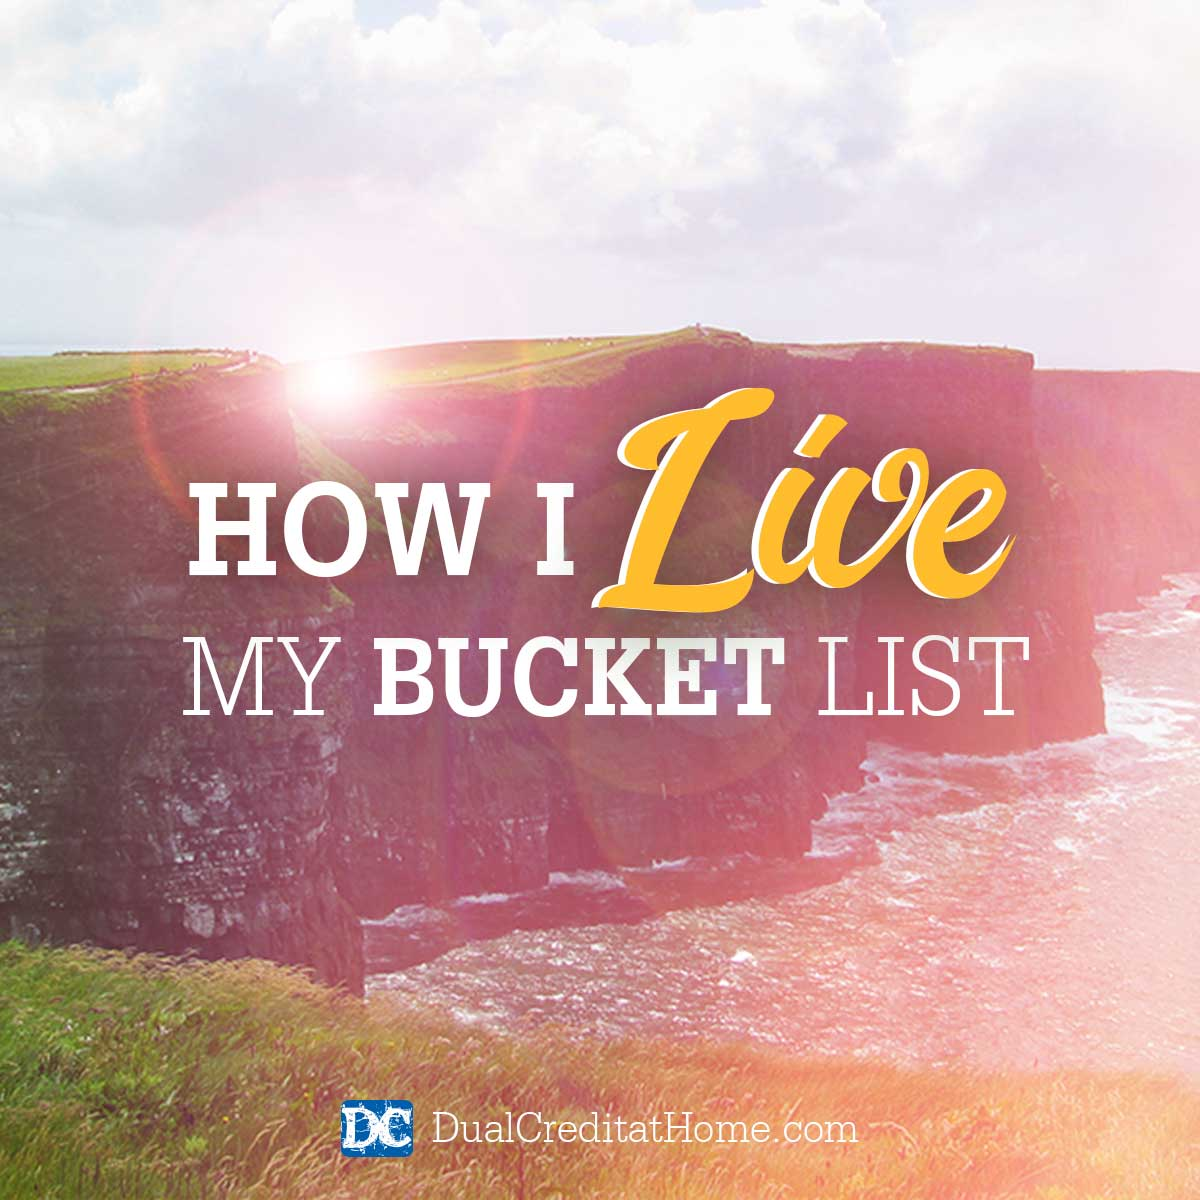 How I Live My Bucket List